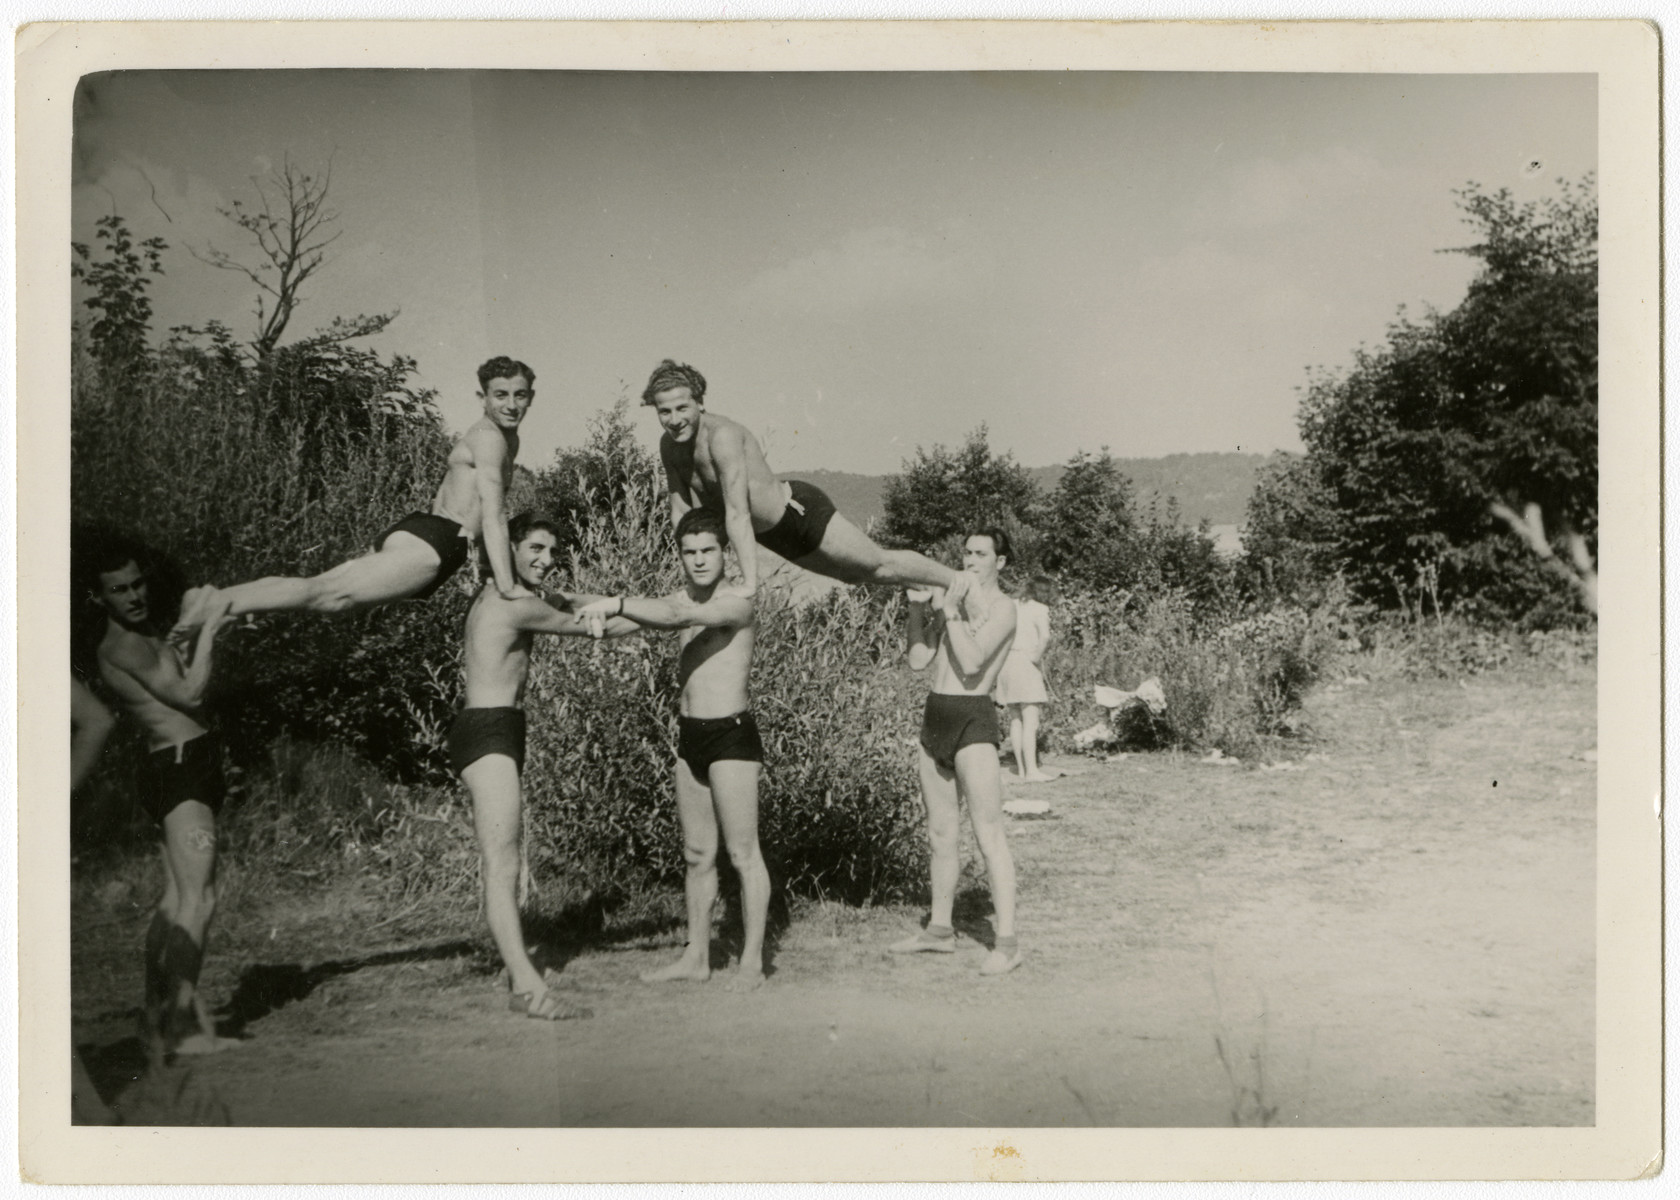 Young men in the Feldafing displaced persons camp do gymnastics.  Chamek (Harry Weinroth) is pictured second from the left on the bottom.  On the top right is Jaszke Aronowitz (Jack Arnel).